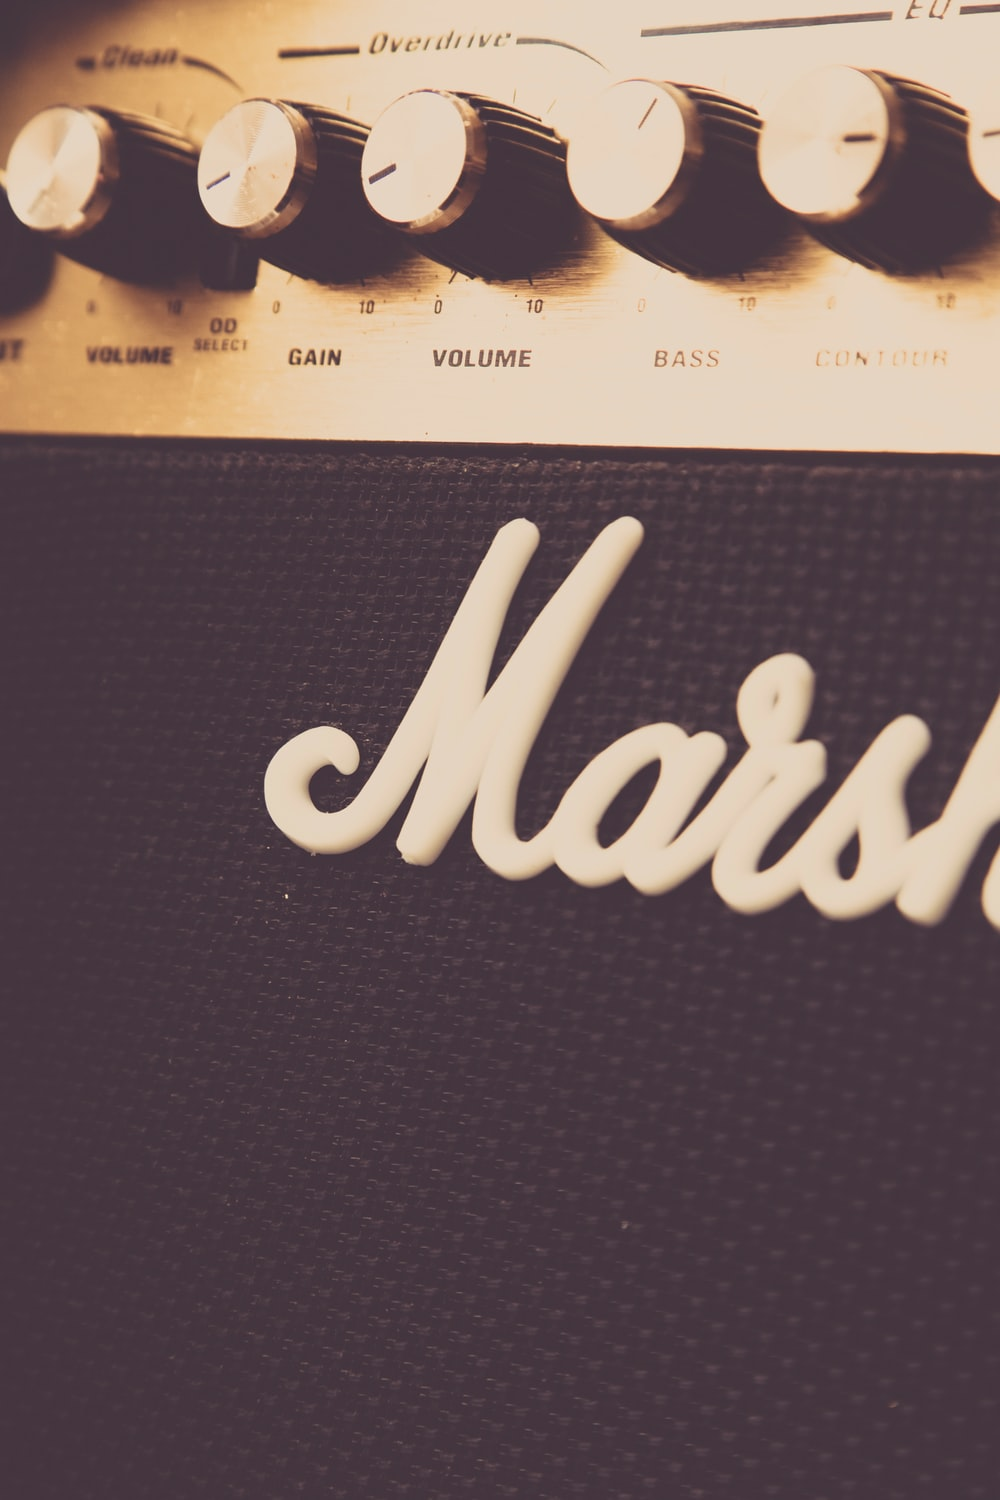 black and brown Marshall guitar amplifier